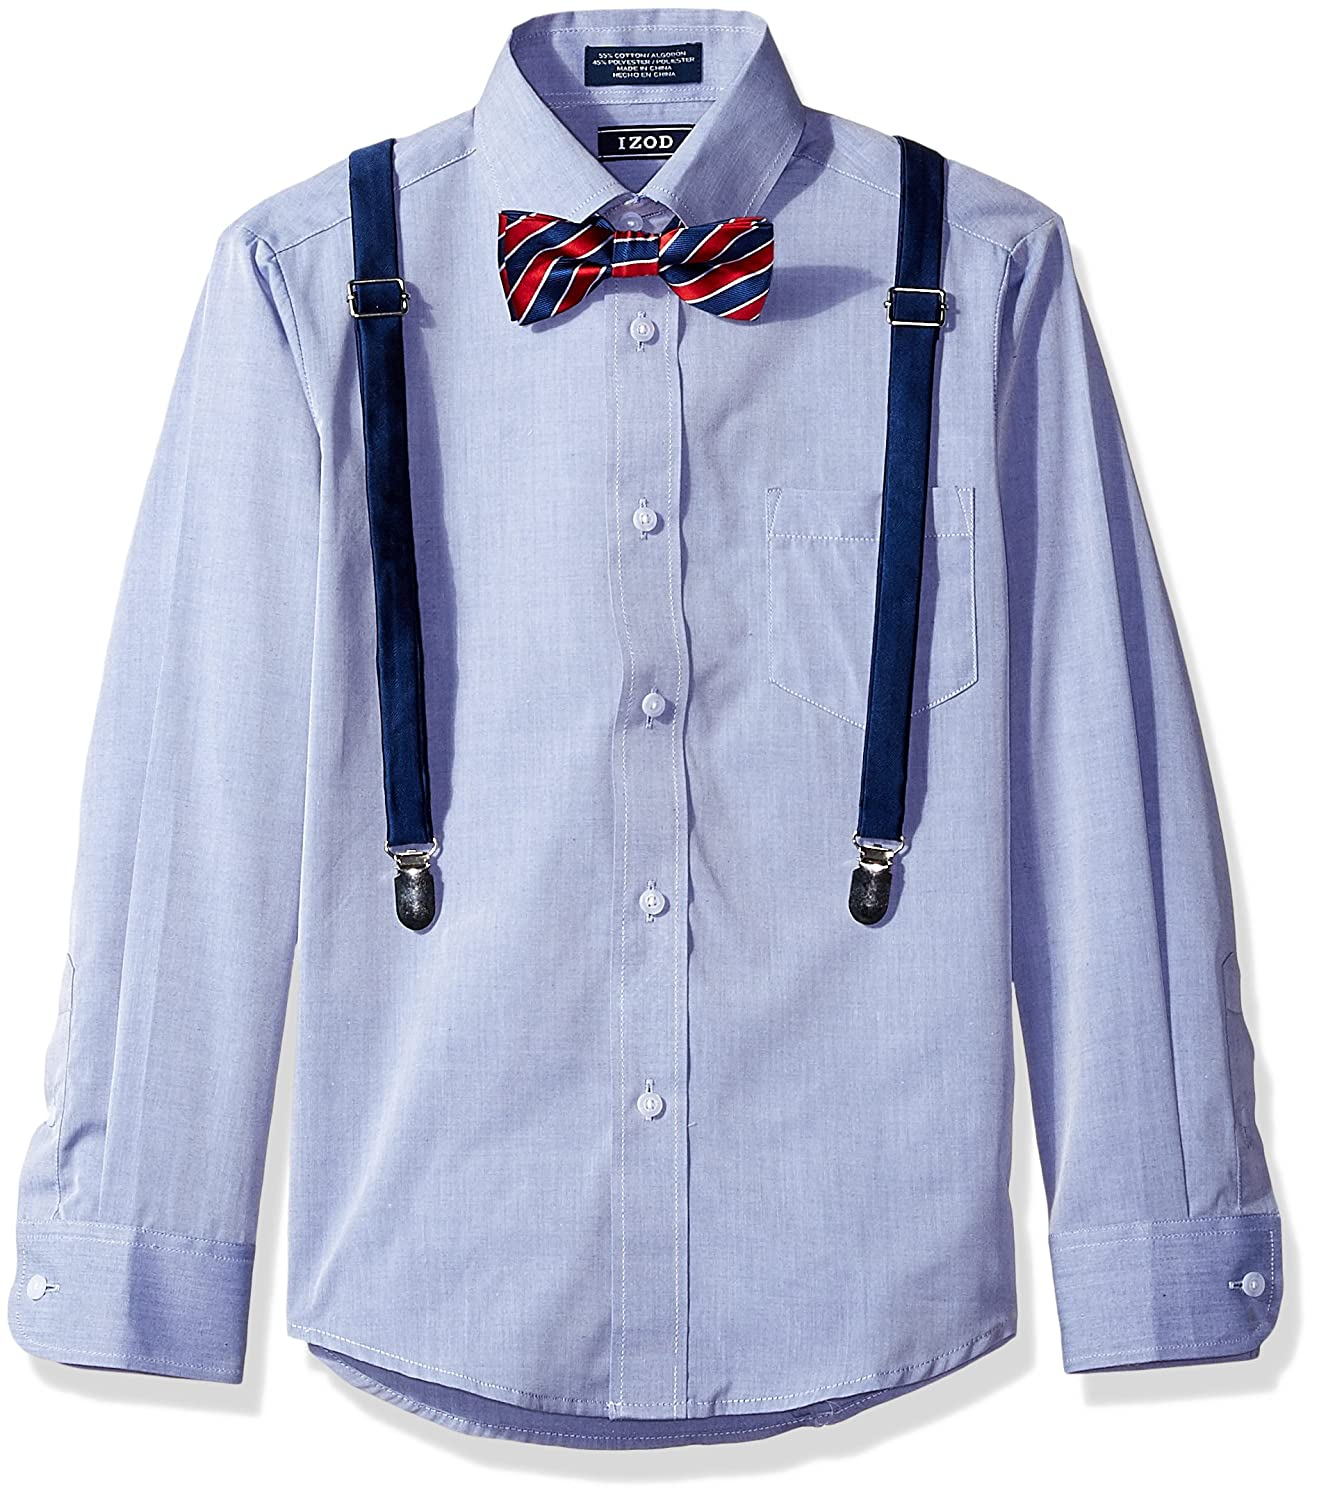 1920s Children Fashions: Girls, Boys, Baby Costumes Izod Kids Big Boys Long Sleeve Fancy Chambray Shirt with Bow Tie and Suspender Set $25.83 AT vintagedancer.com